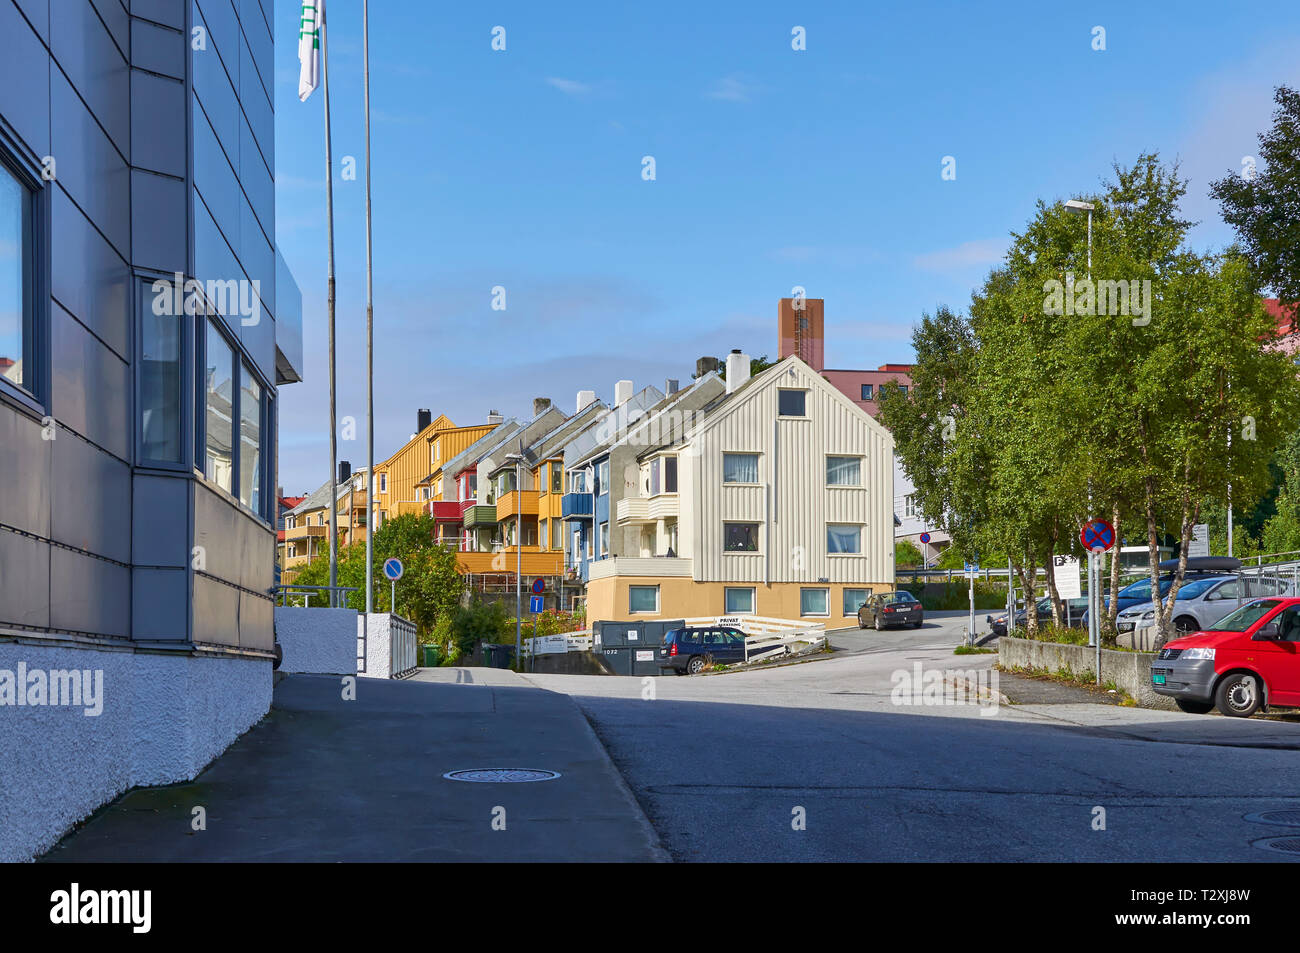 A Small street in Kristiansund in Norway with the colourful terraced houses built on a side of a hill with many tree's on a Summers day. Norway - Stock Image